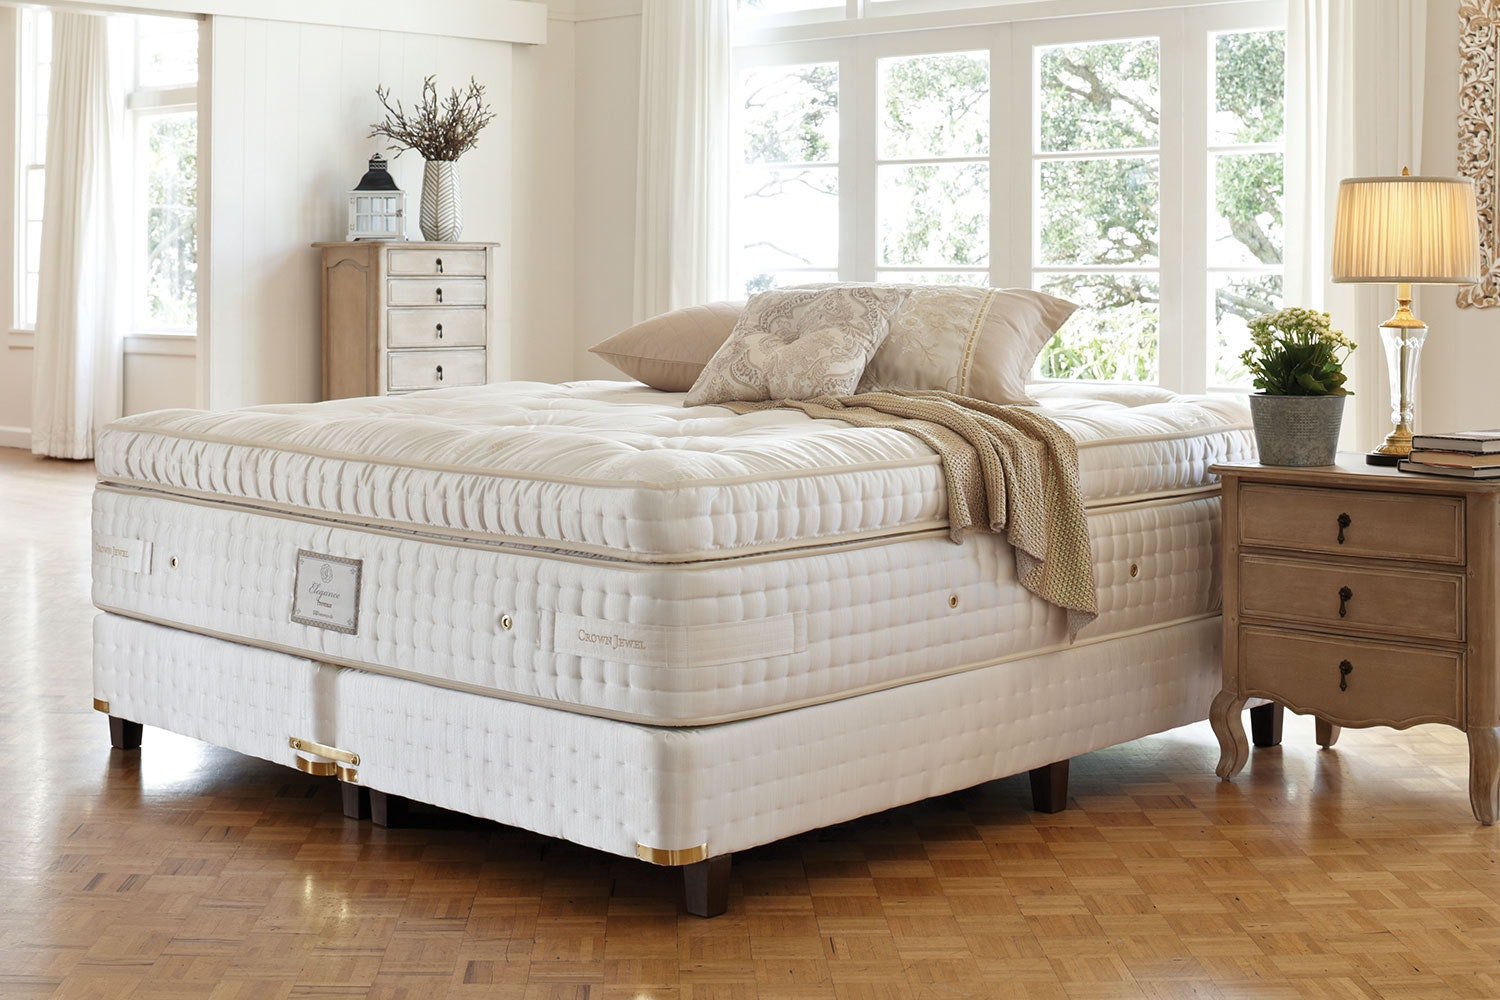 Provence Ultra Plush Queen Mattress By Crown Jewel Harvey Norman